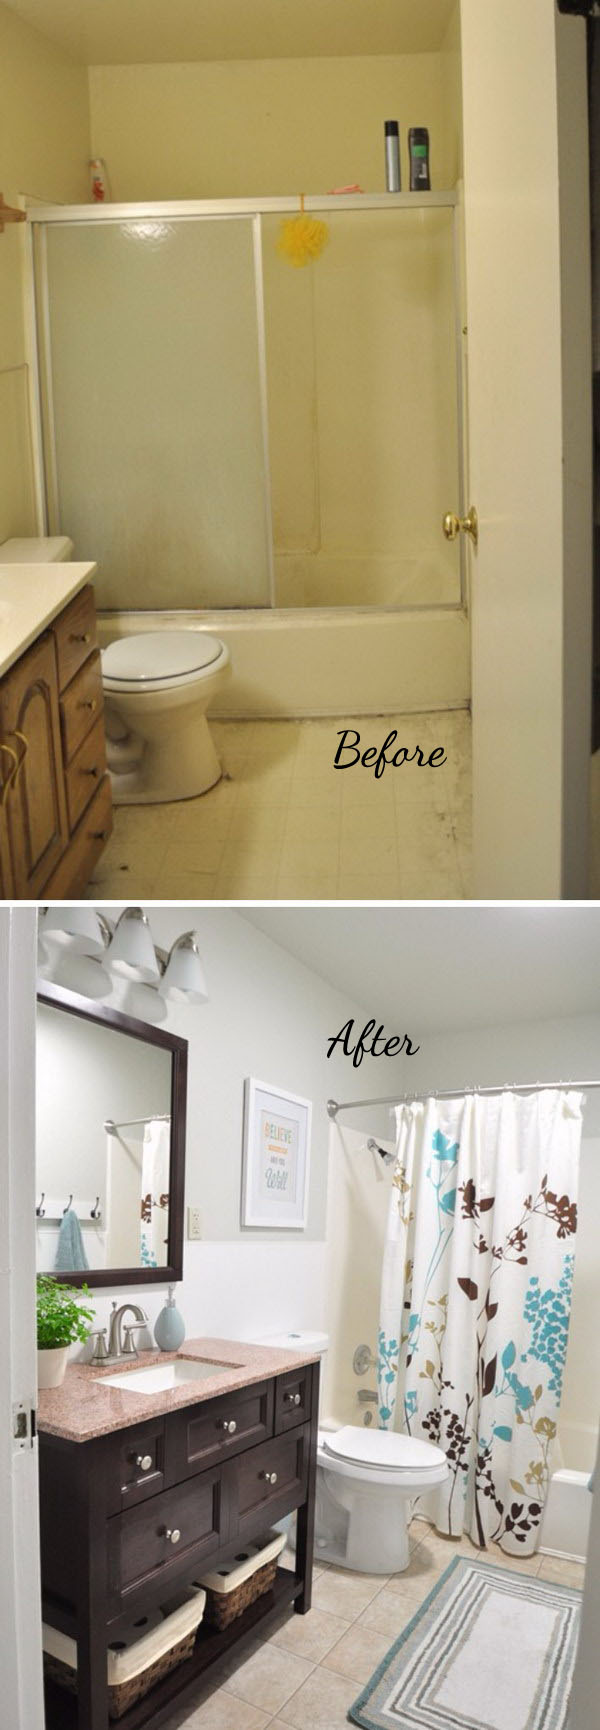 33 inspirational small bathroom remodel before and after for Amazing small bathrooms